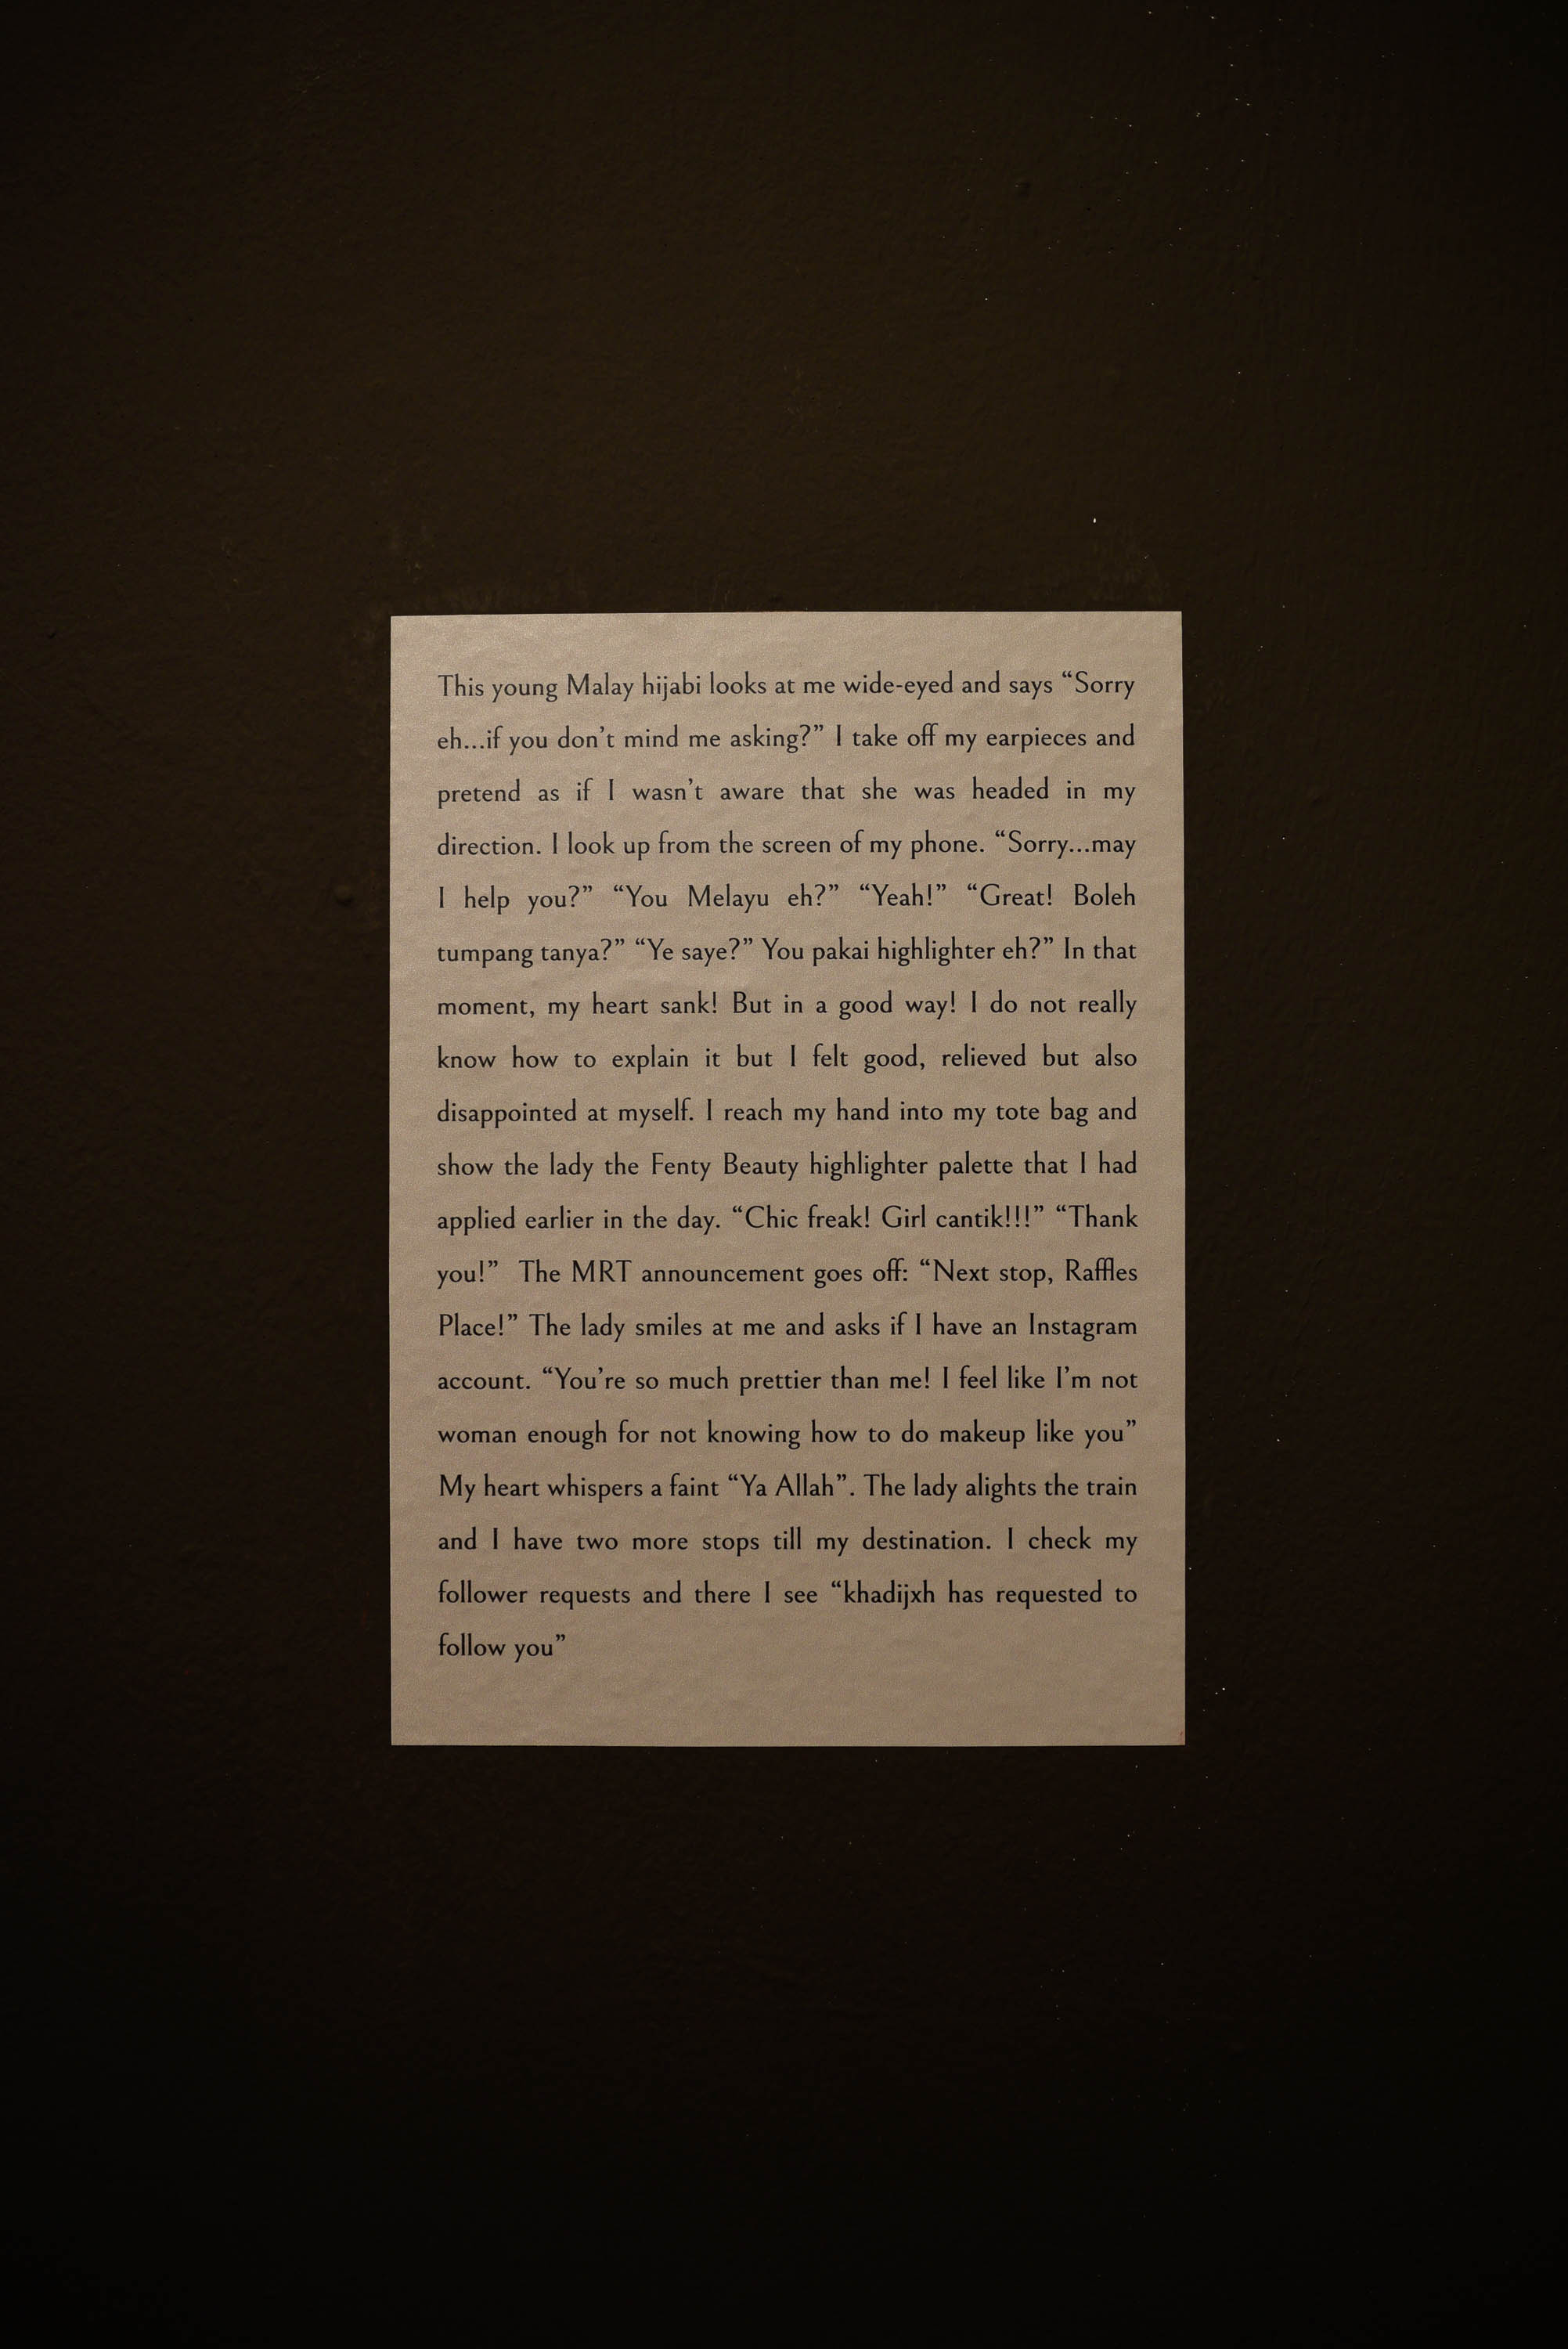 One of the short narrative passages found around the exhibition, this anecdote is from Norah Lea. Photo by Ivan Ong.